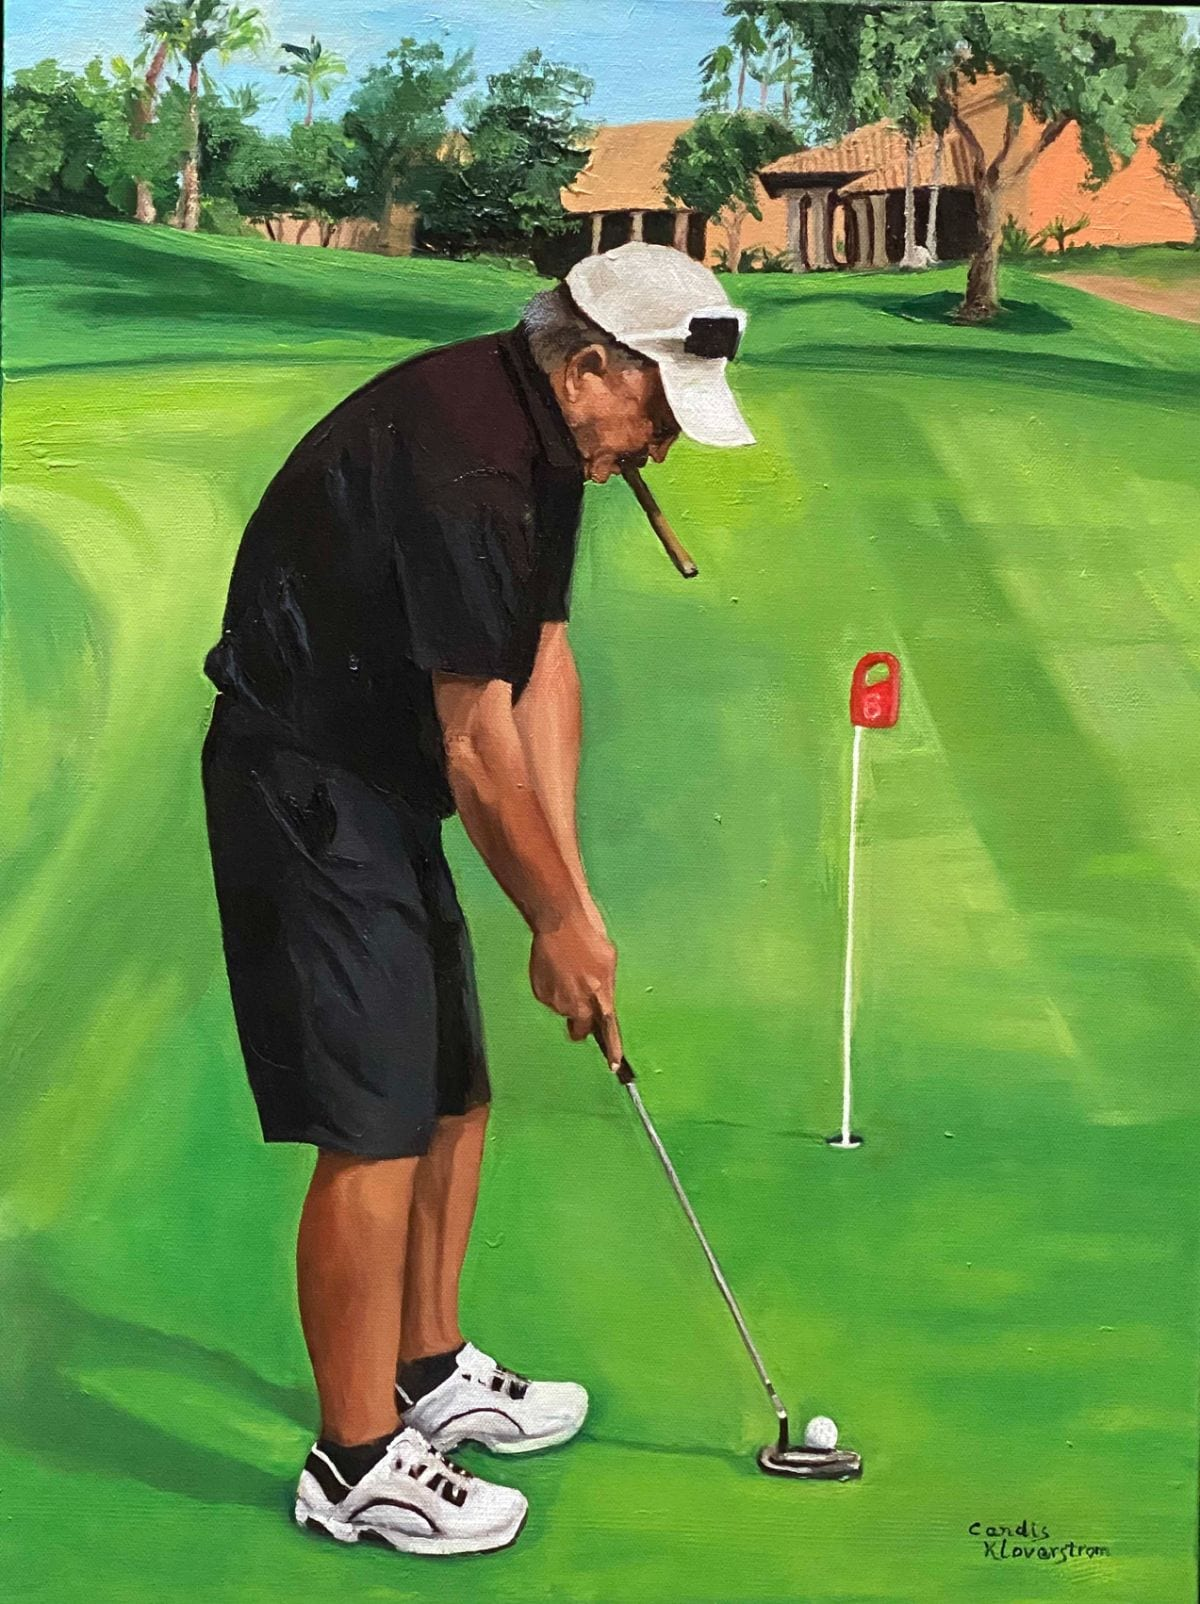 The Golfer from Art By Candi K